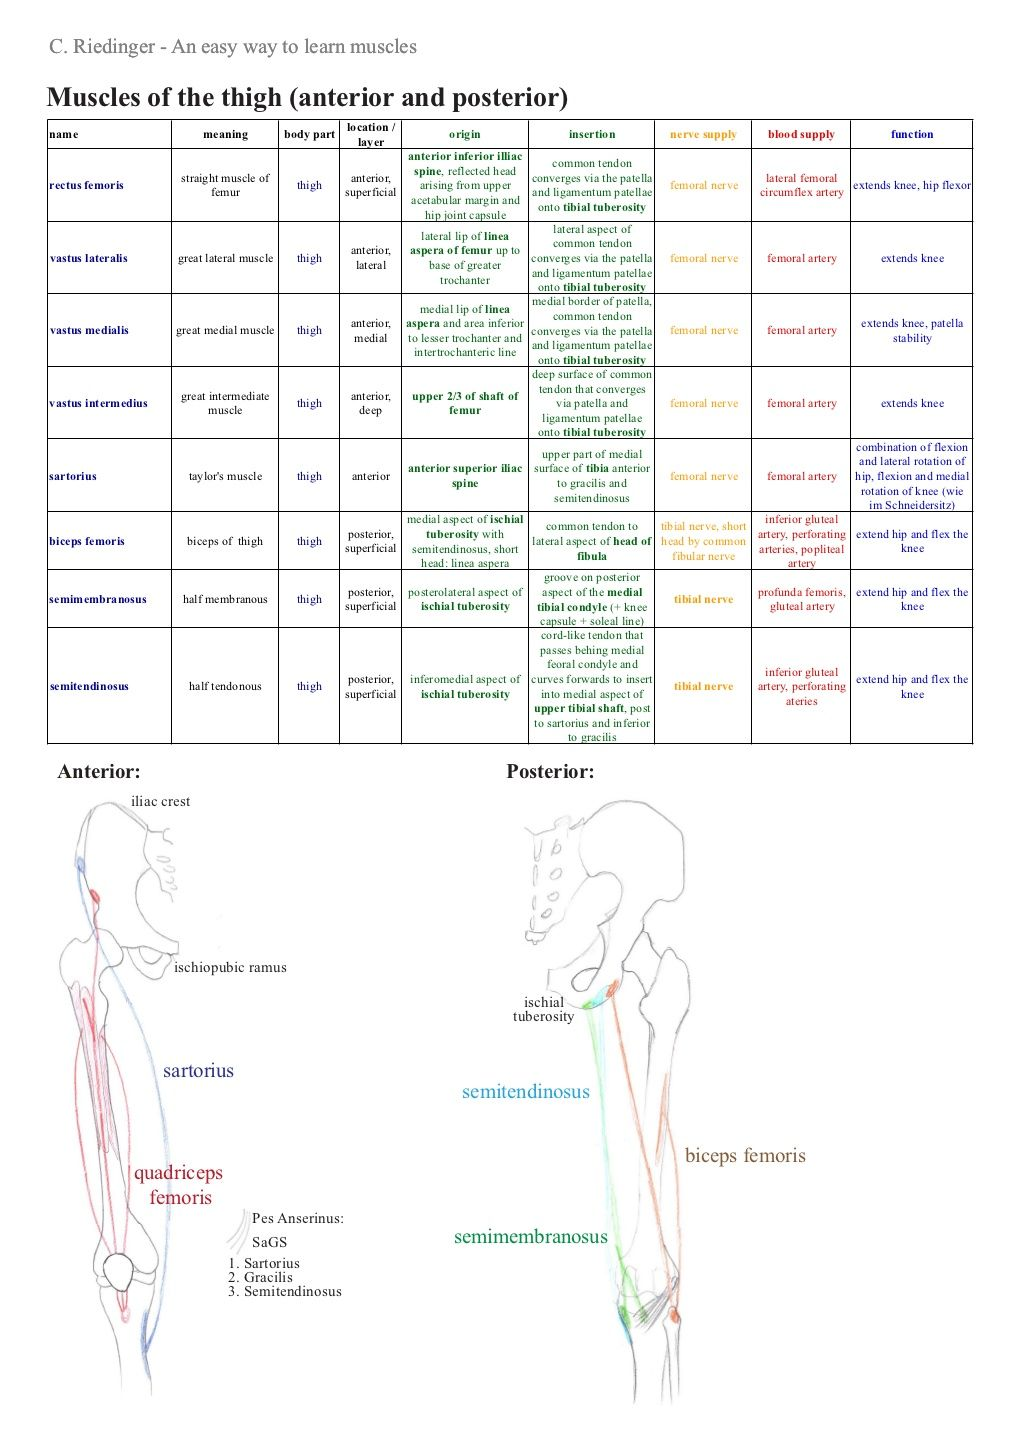 An Easy Way To Learn Muscles Of The Lower Limb By Christiane